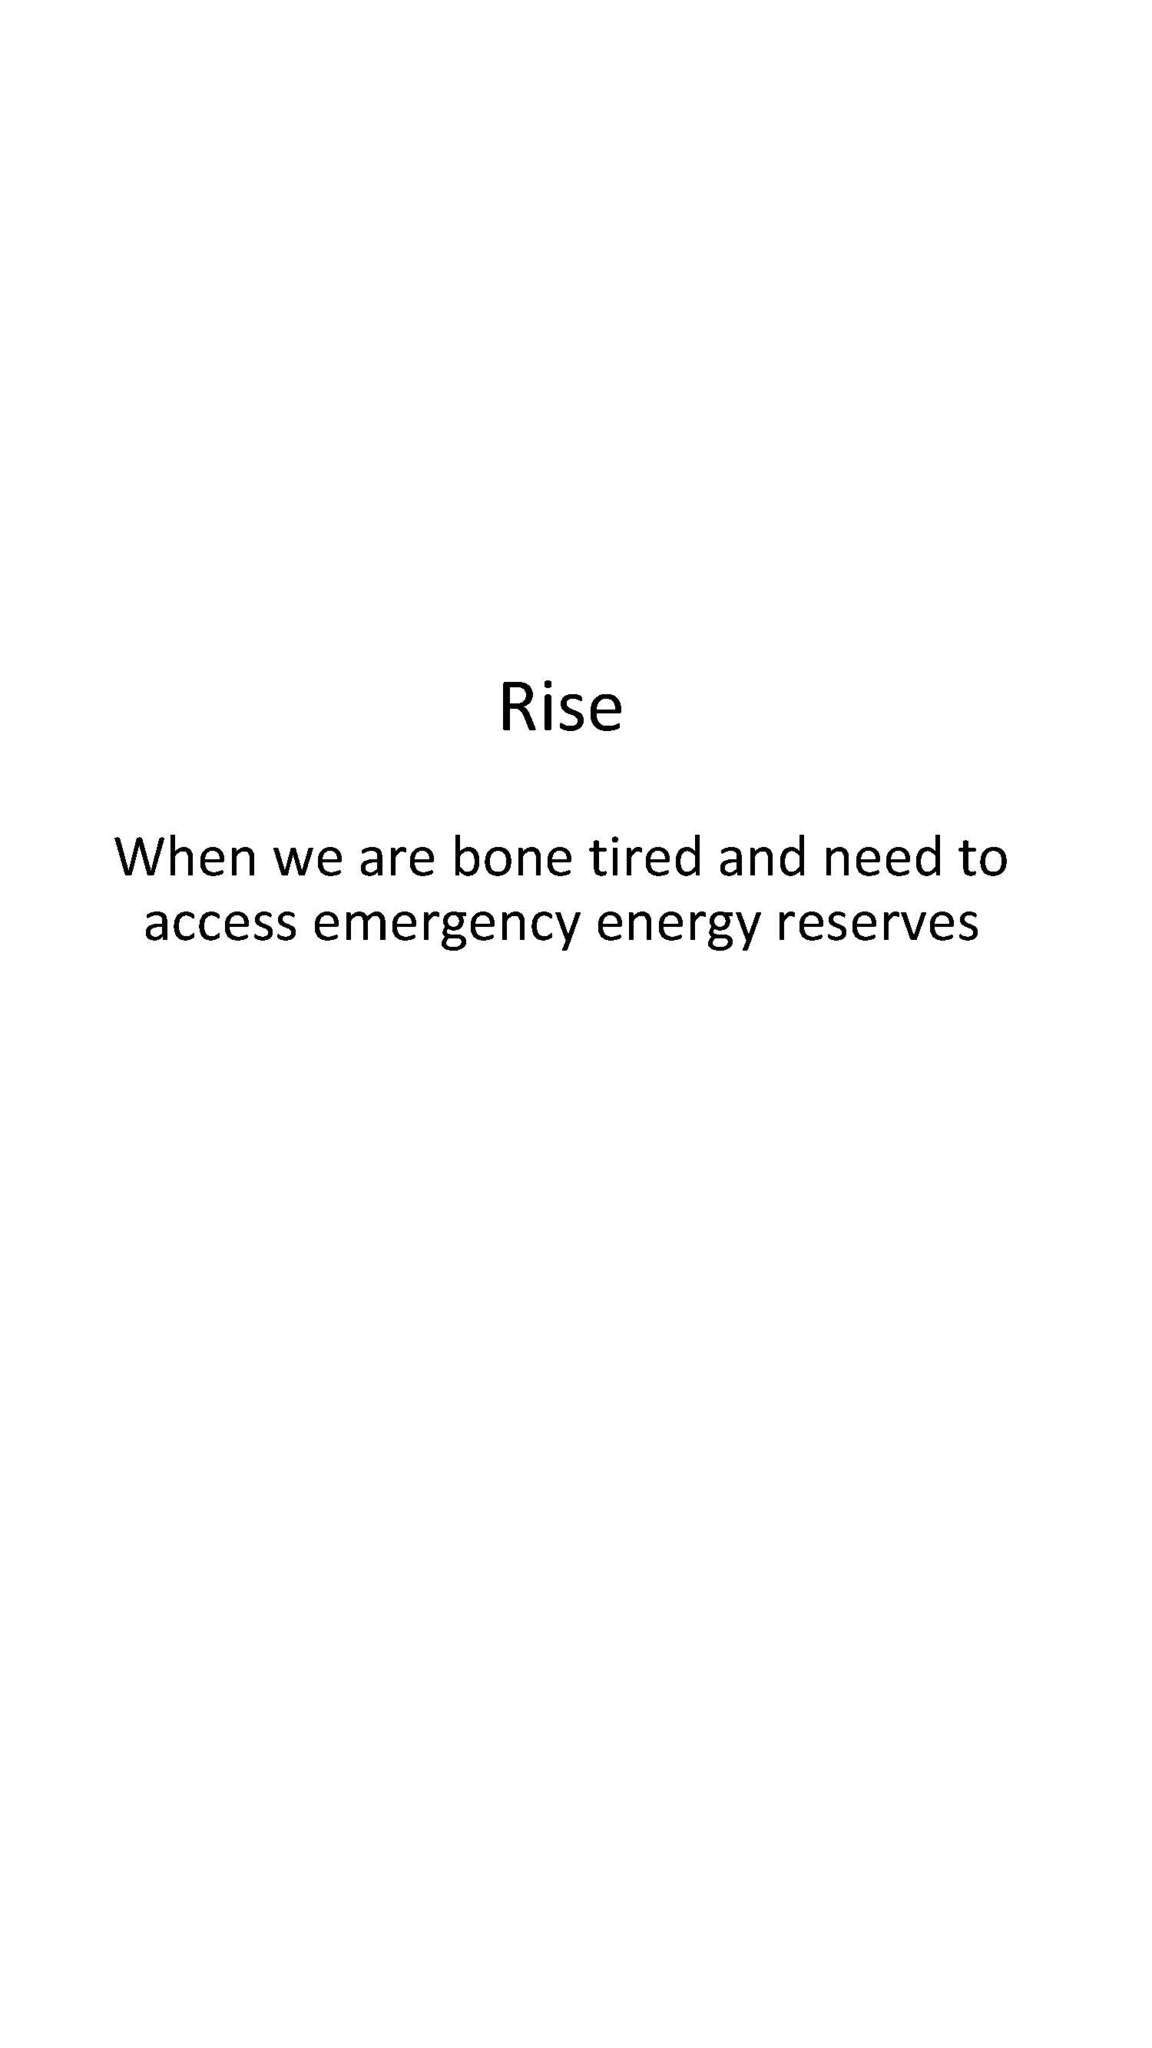 Rise - revive your tired energy